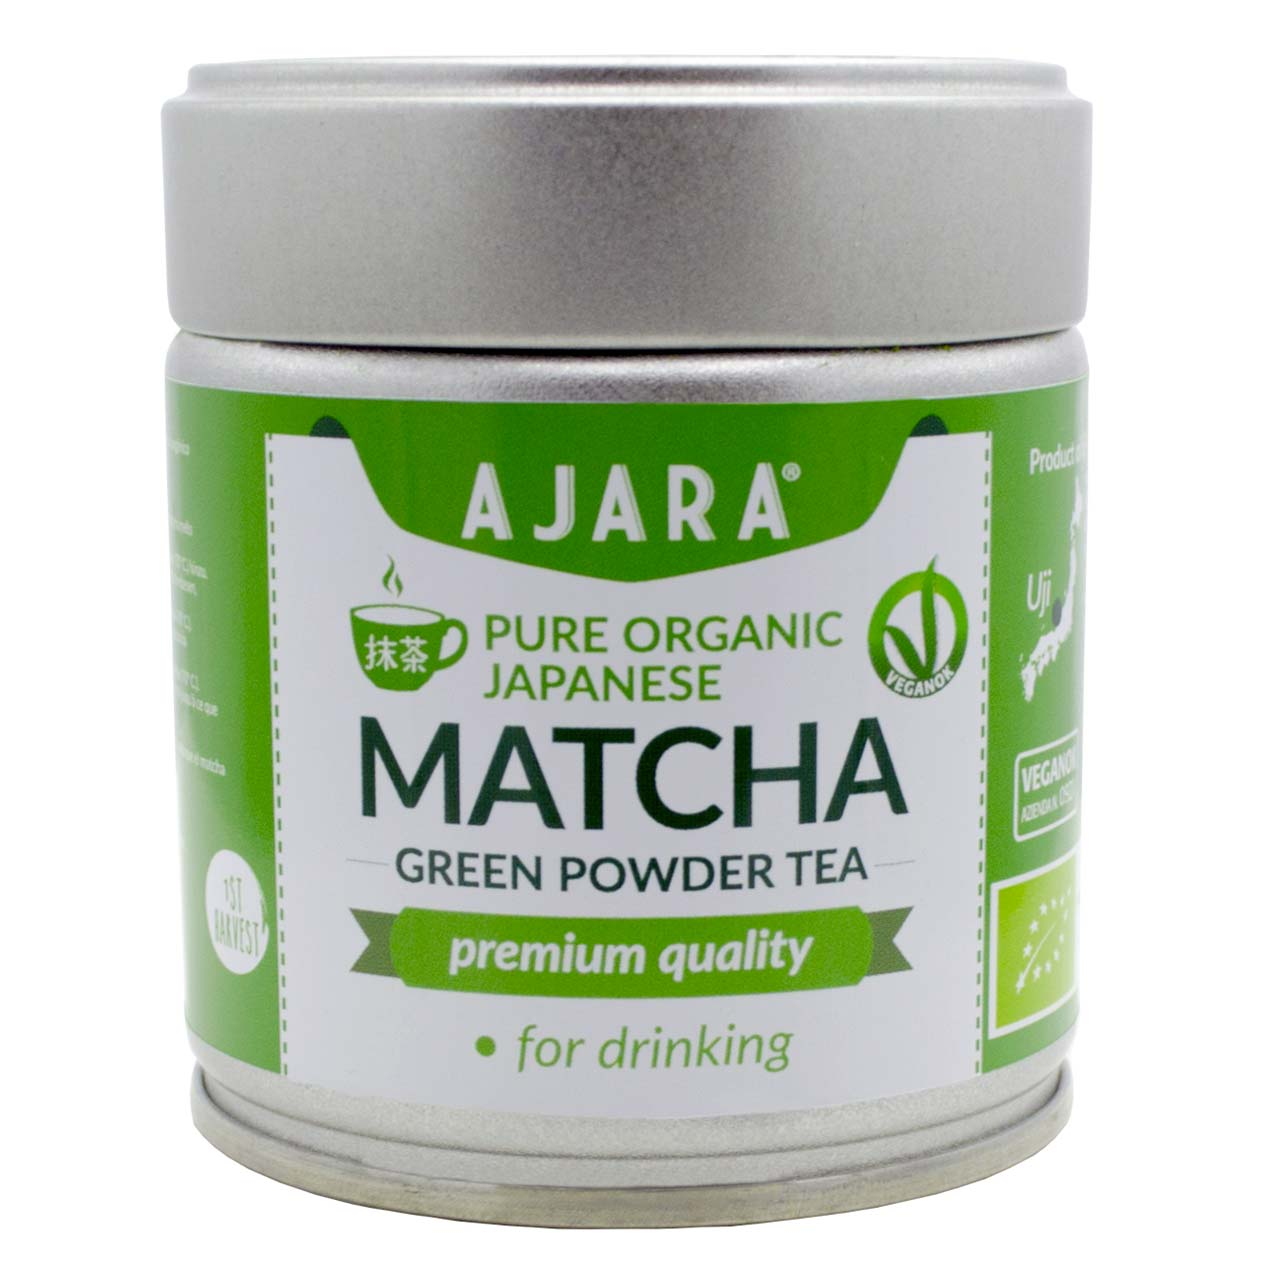 Tè Verde Matcha Biologico in polvere Giapponese